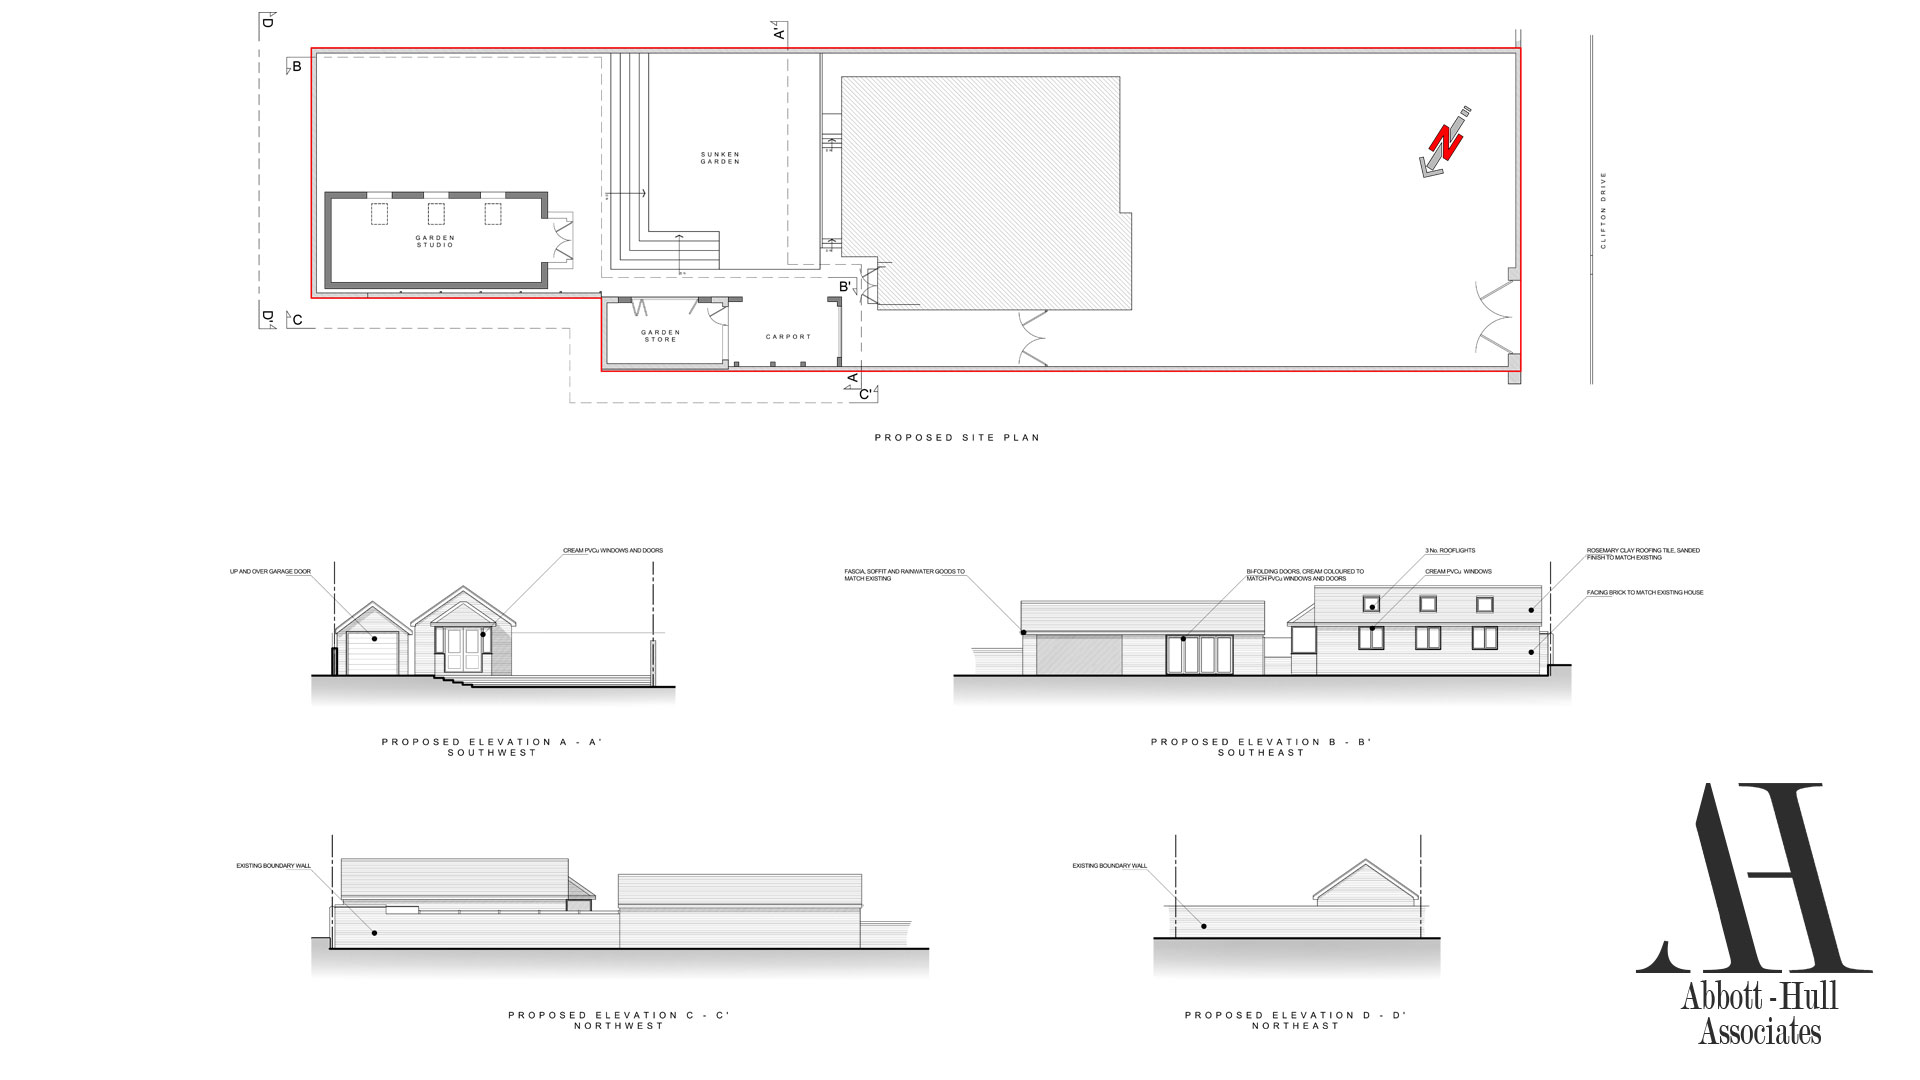 Clifton Drive, Lytham St. Annes - Proposed Plans and Elevations